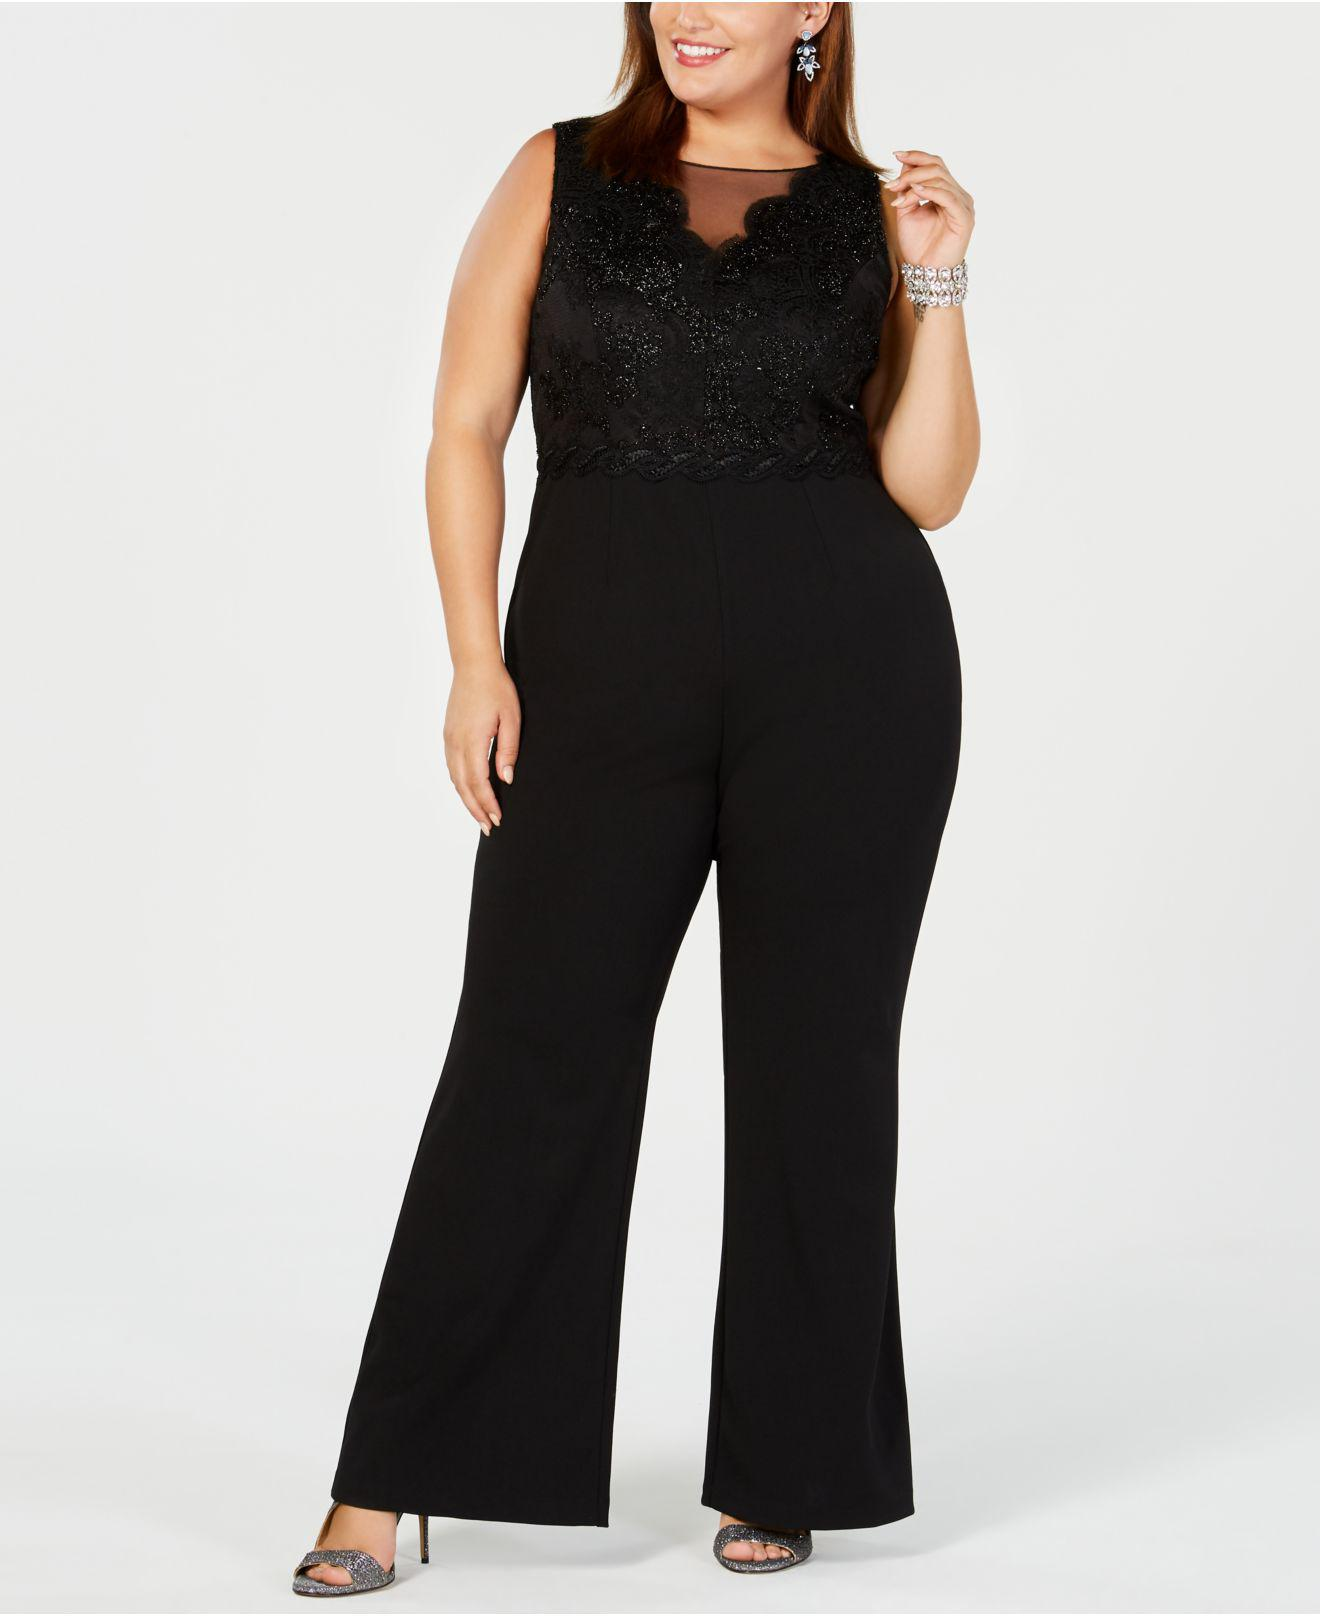 3f2f6ddb5488 Lyst - Adrianna Papell Plus Size Metallic Lace Jumpsuit in Black ...